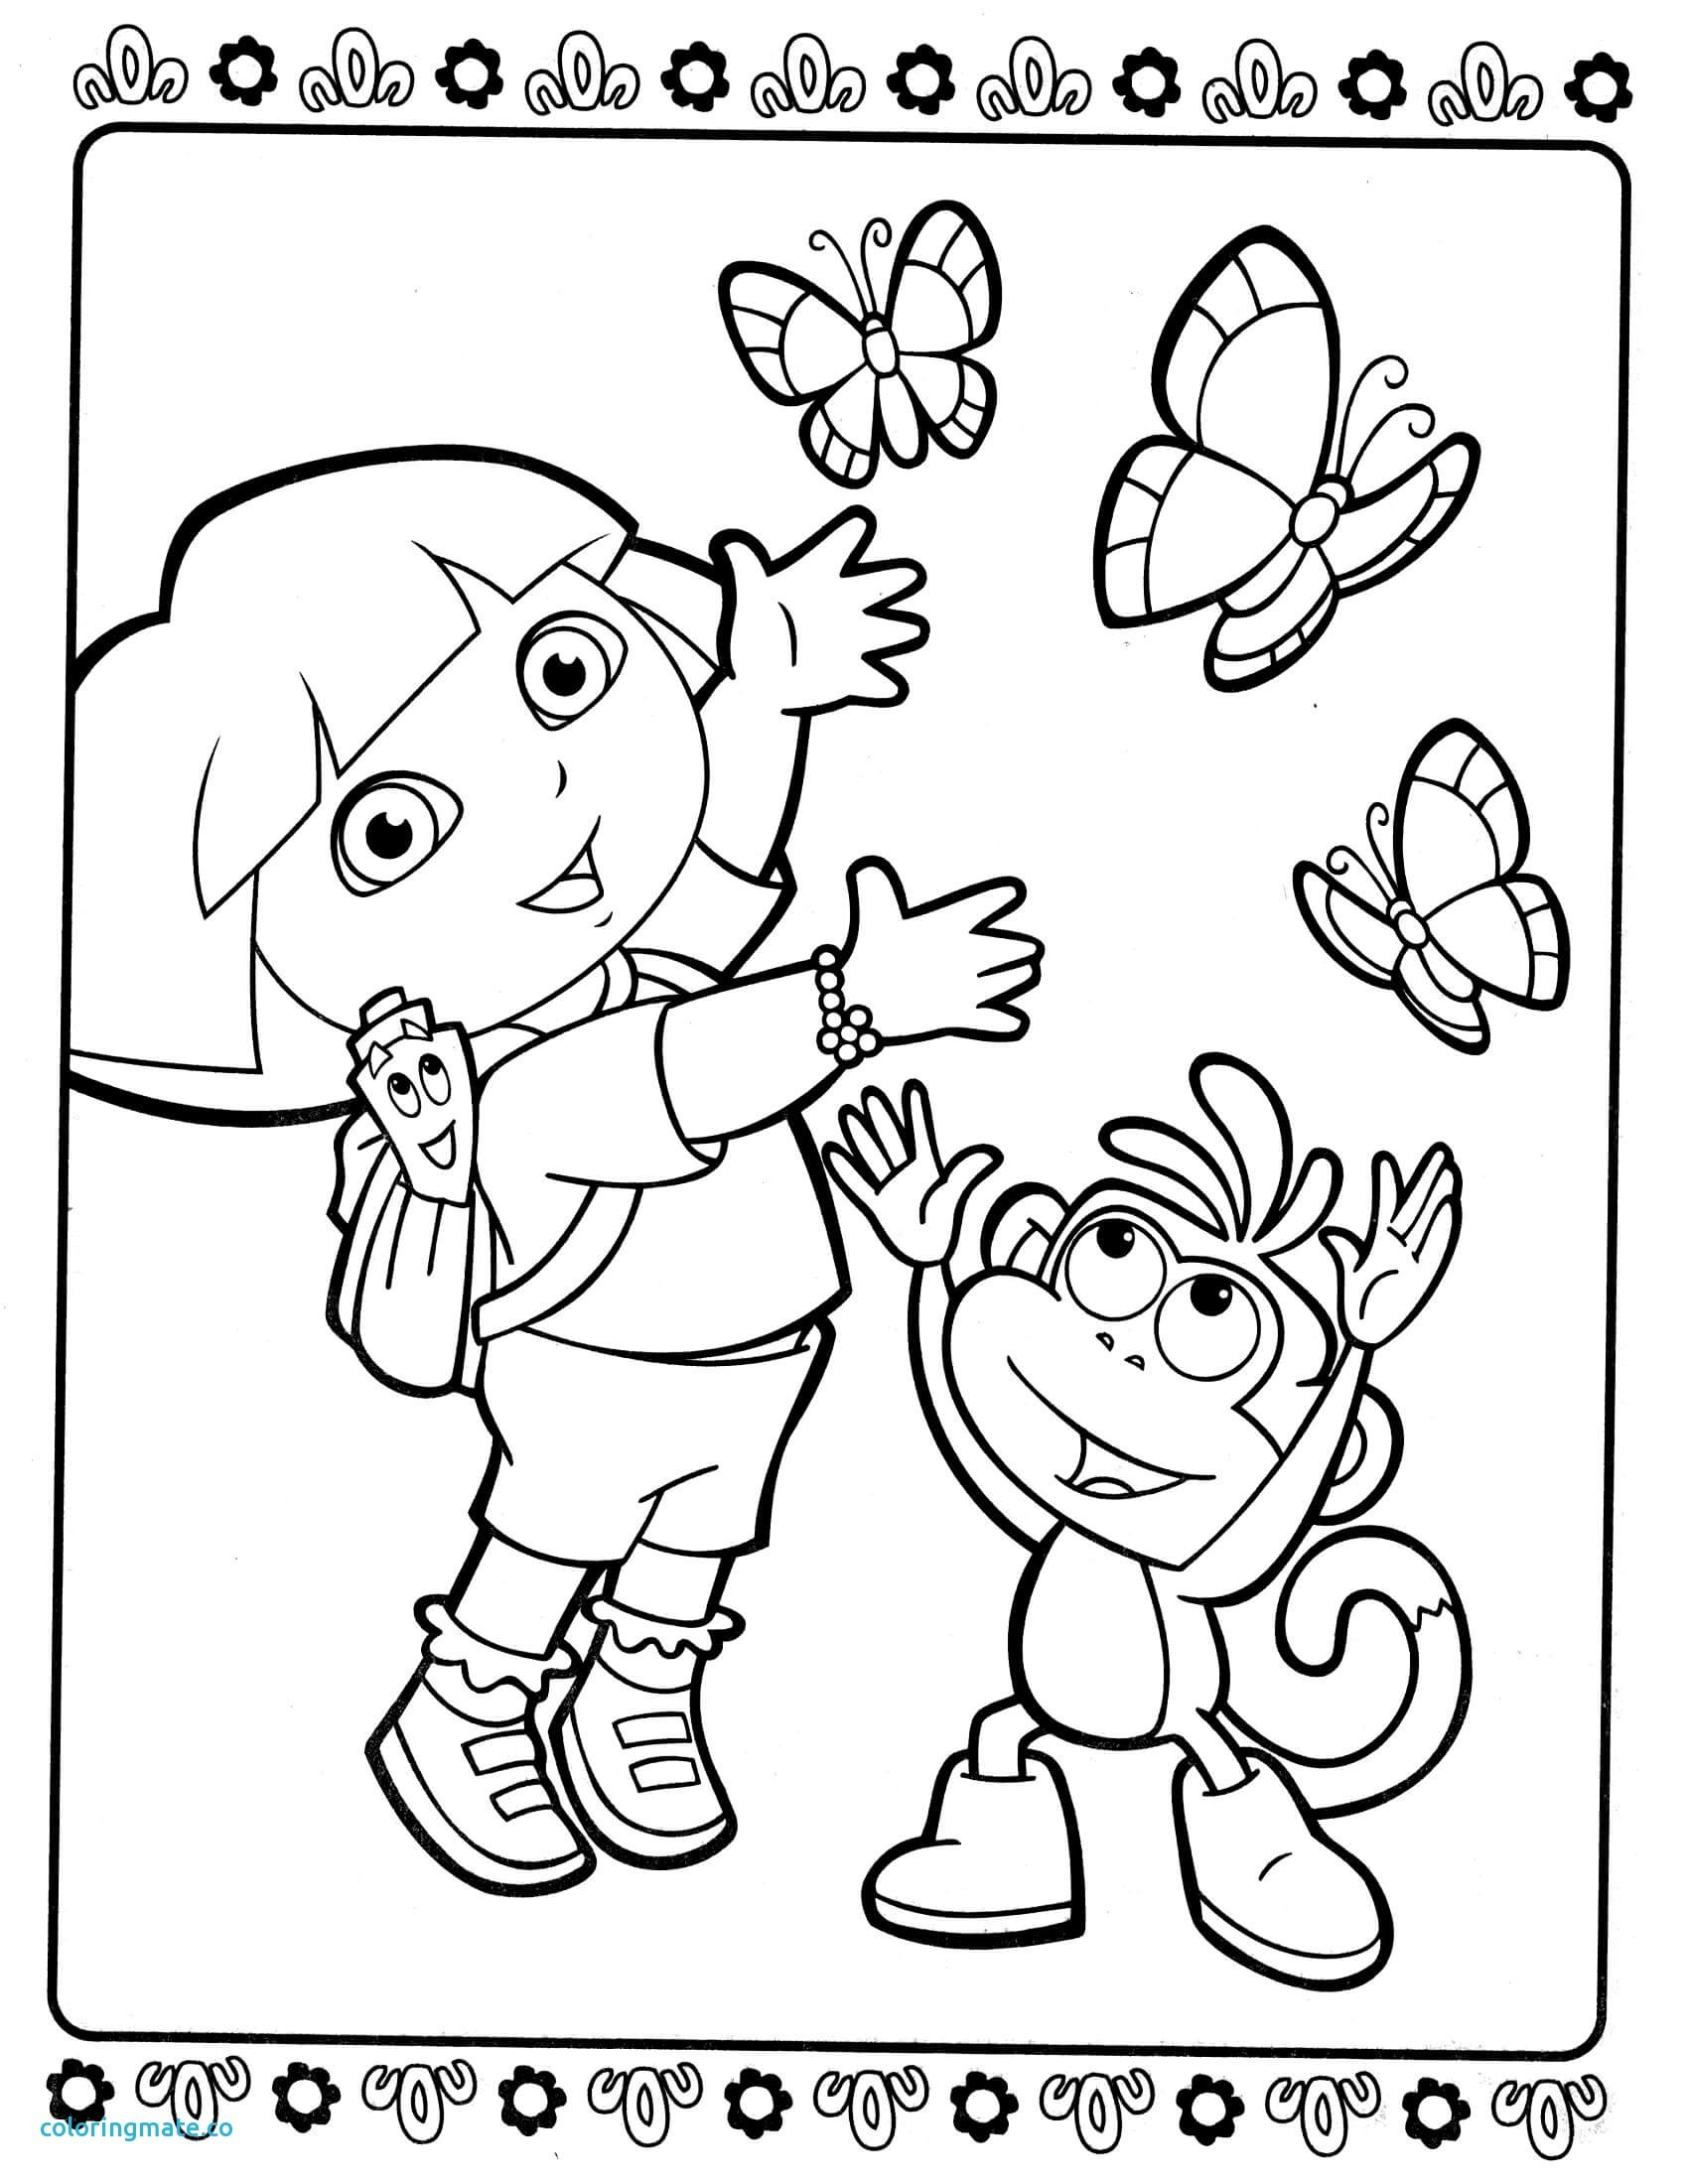 coloring pages dora and friends dora and friends coloring pages dora coloring and friends pages